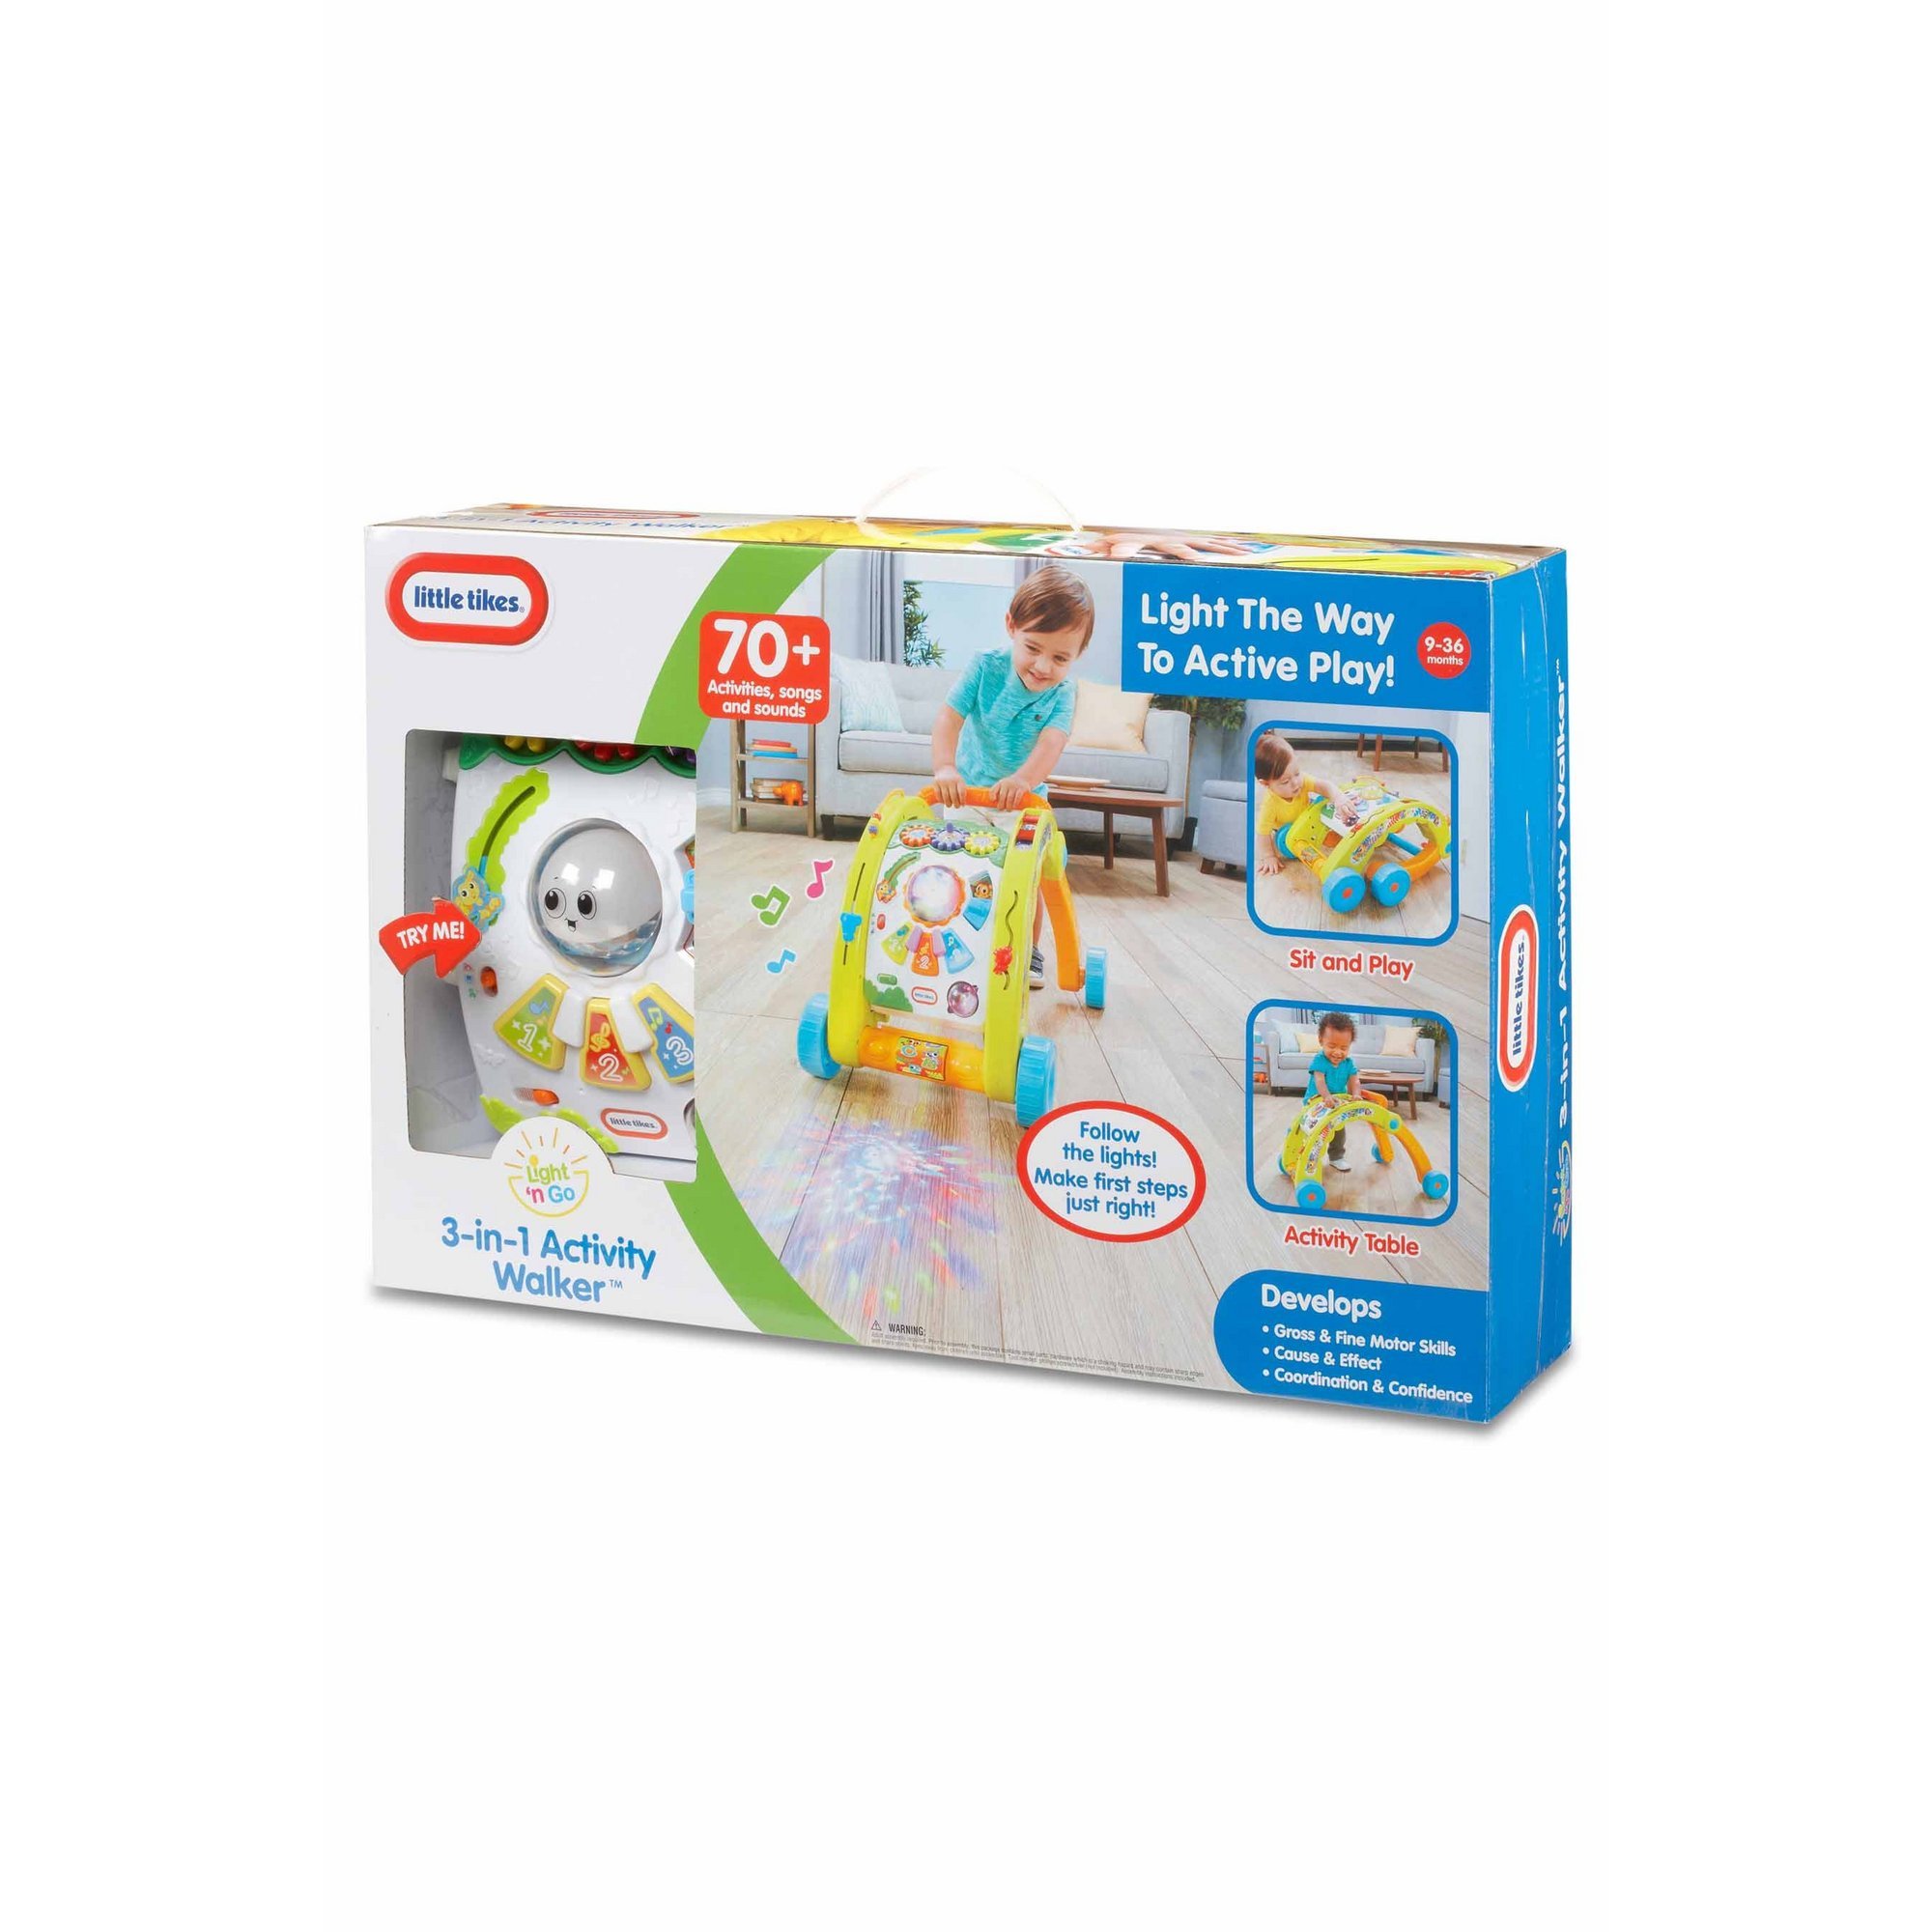 Image of Little Tikes 3-in-1 Activity Walker